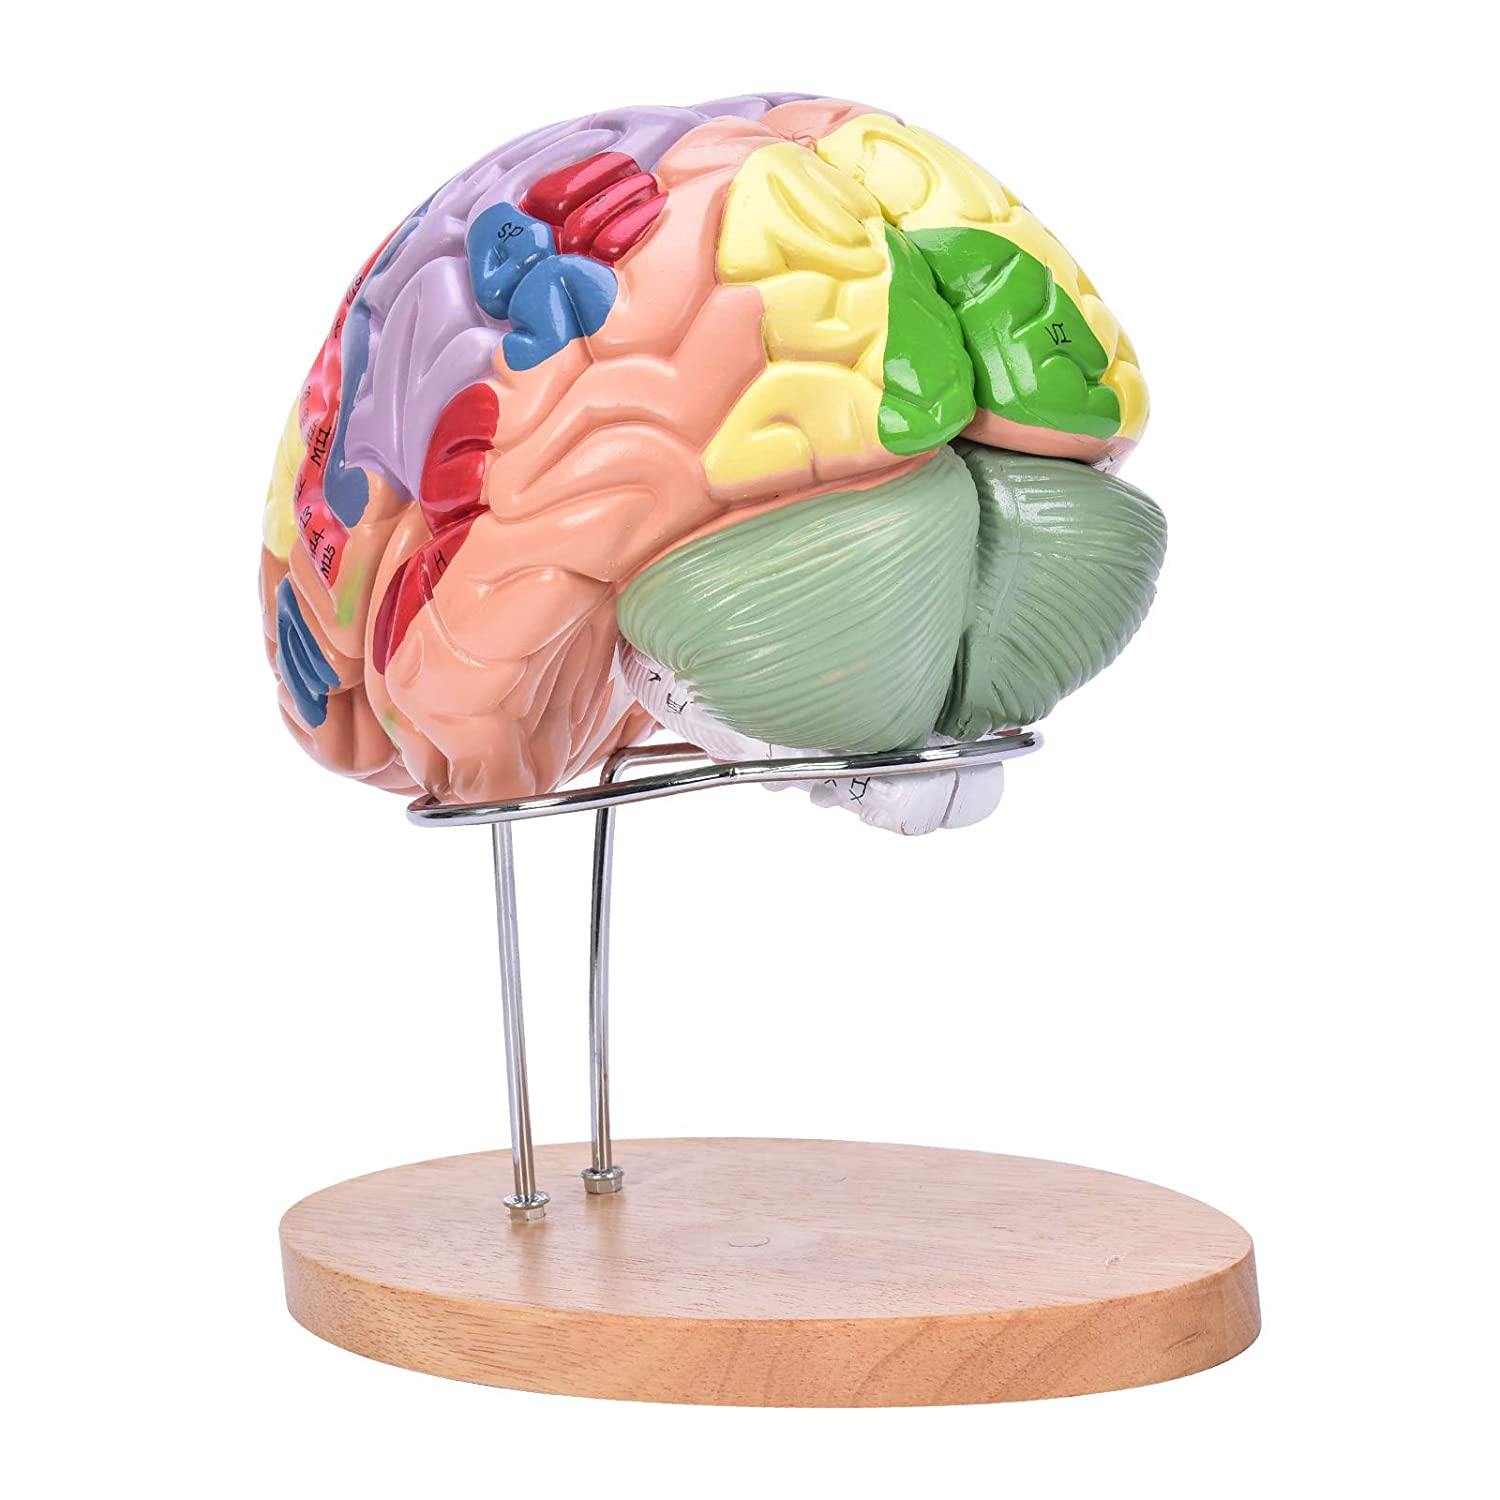 Bavnnro Human Brain Model with Labels Human Regional Brain Model Cerebral Cortex Nerve 4 Parts and A Support for Learning Science Classroom Study Display Medical Model